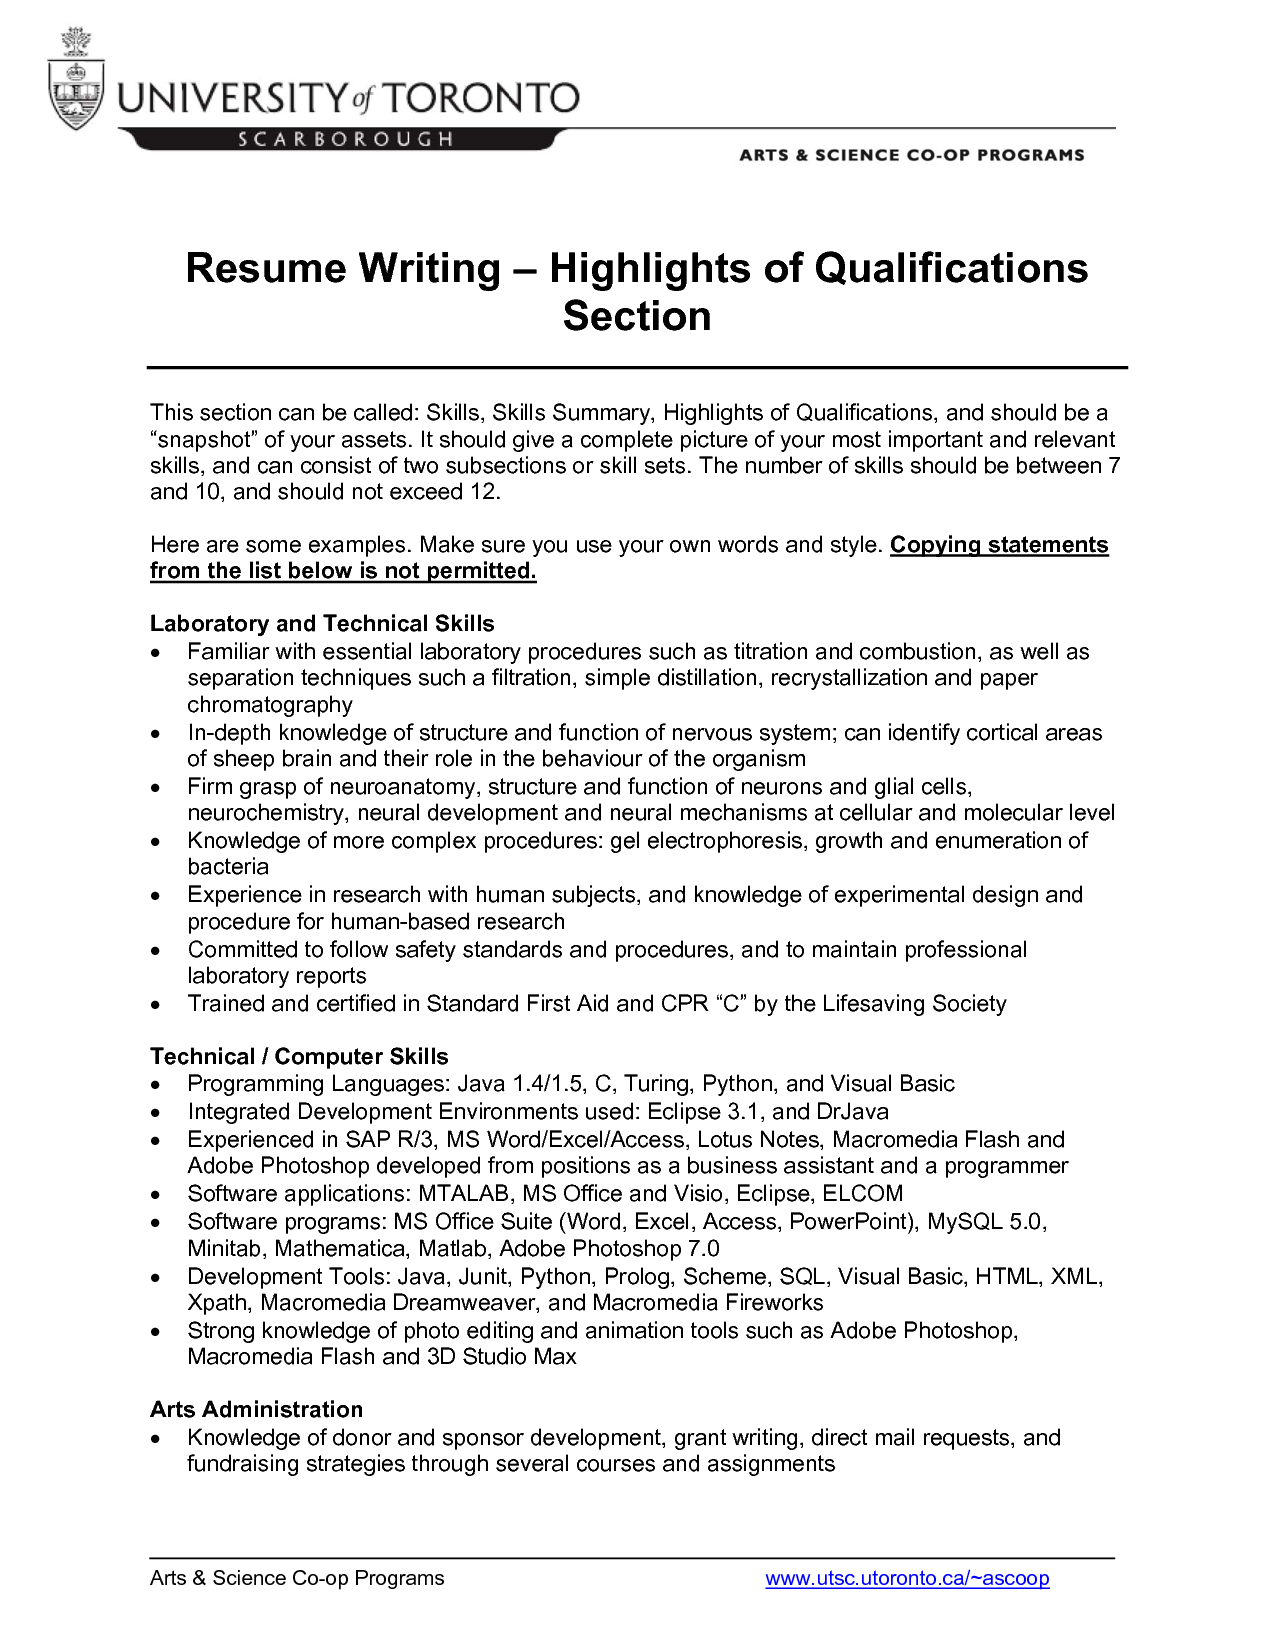 Beautiful Computer Skills Qualifications Resume    Http://www.resumecareer.info/computer Regarding Skills And Qualifications Examples